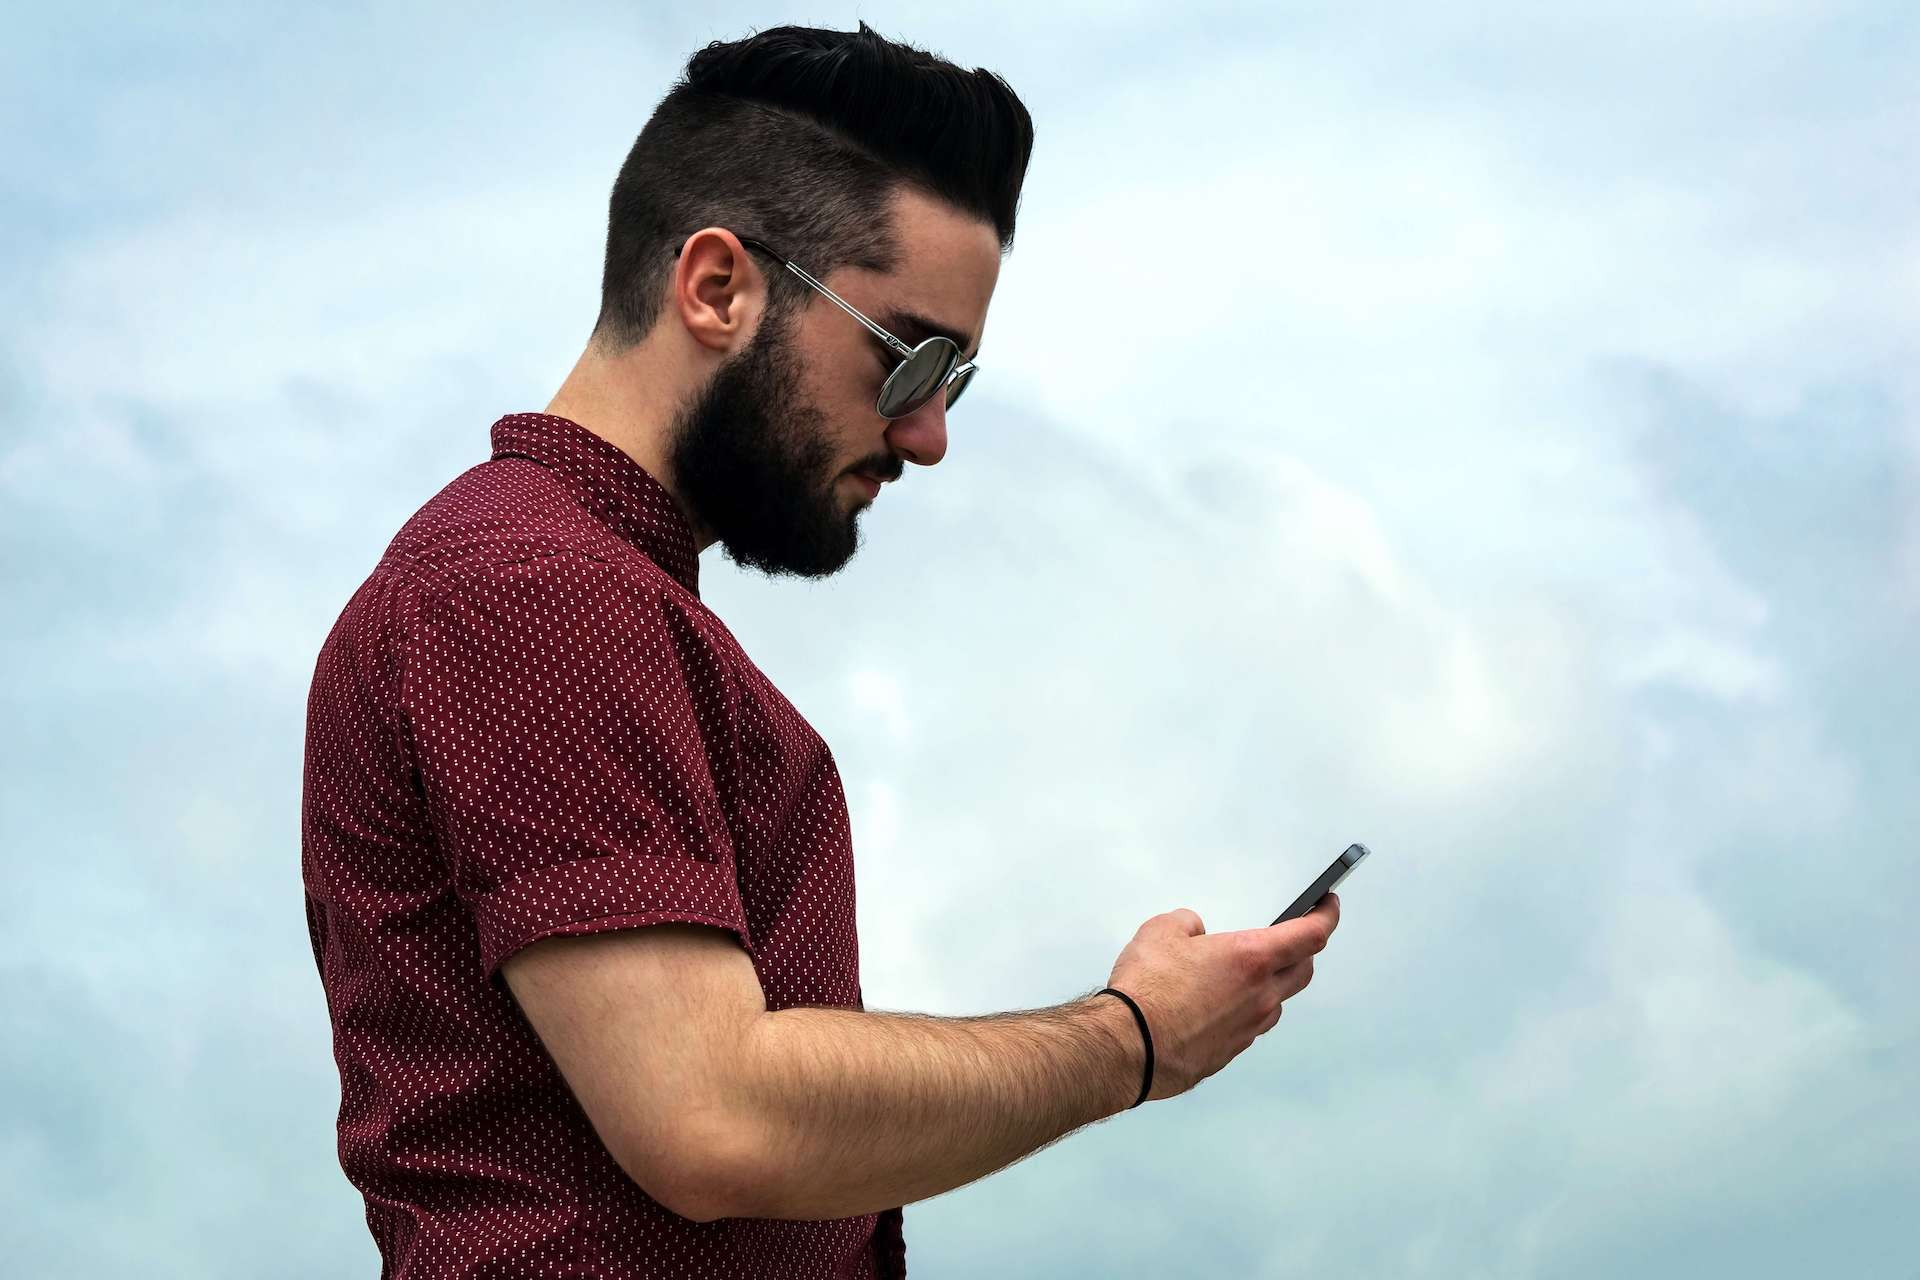 Man holding a Phone and lowering his neck